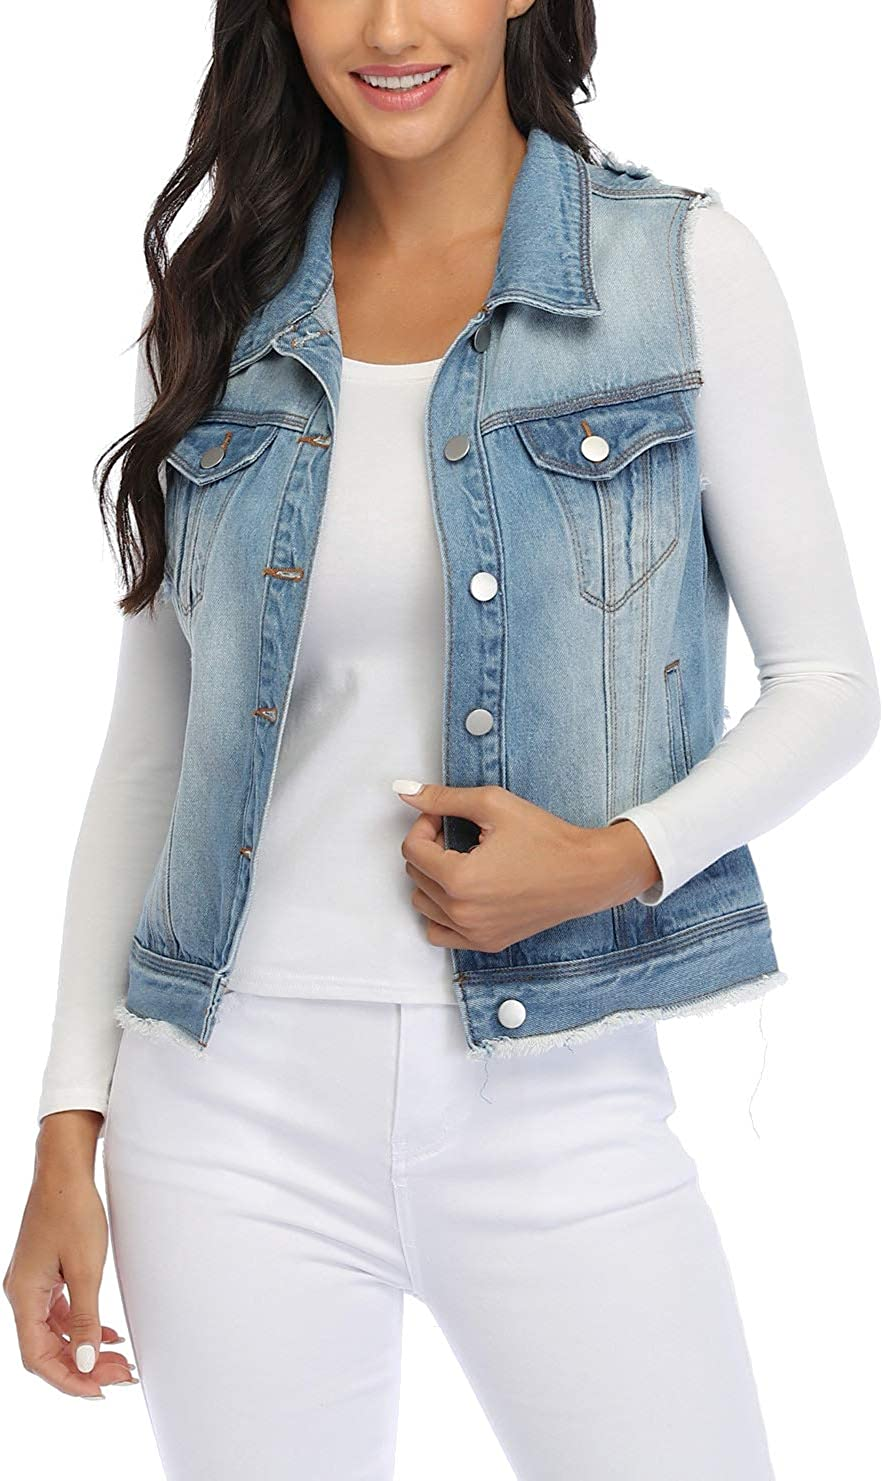 MISS MOLY Women's Sleeveless Cotton Denim Vest Classic Washed Button Up Casual Jean Jacket w 2 Flap Pockets